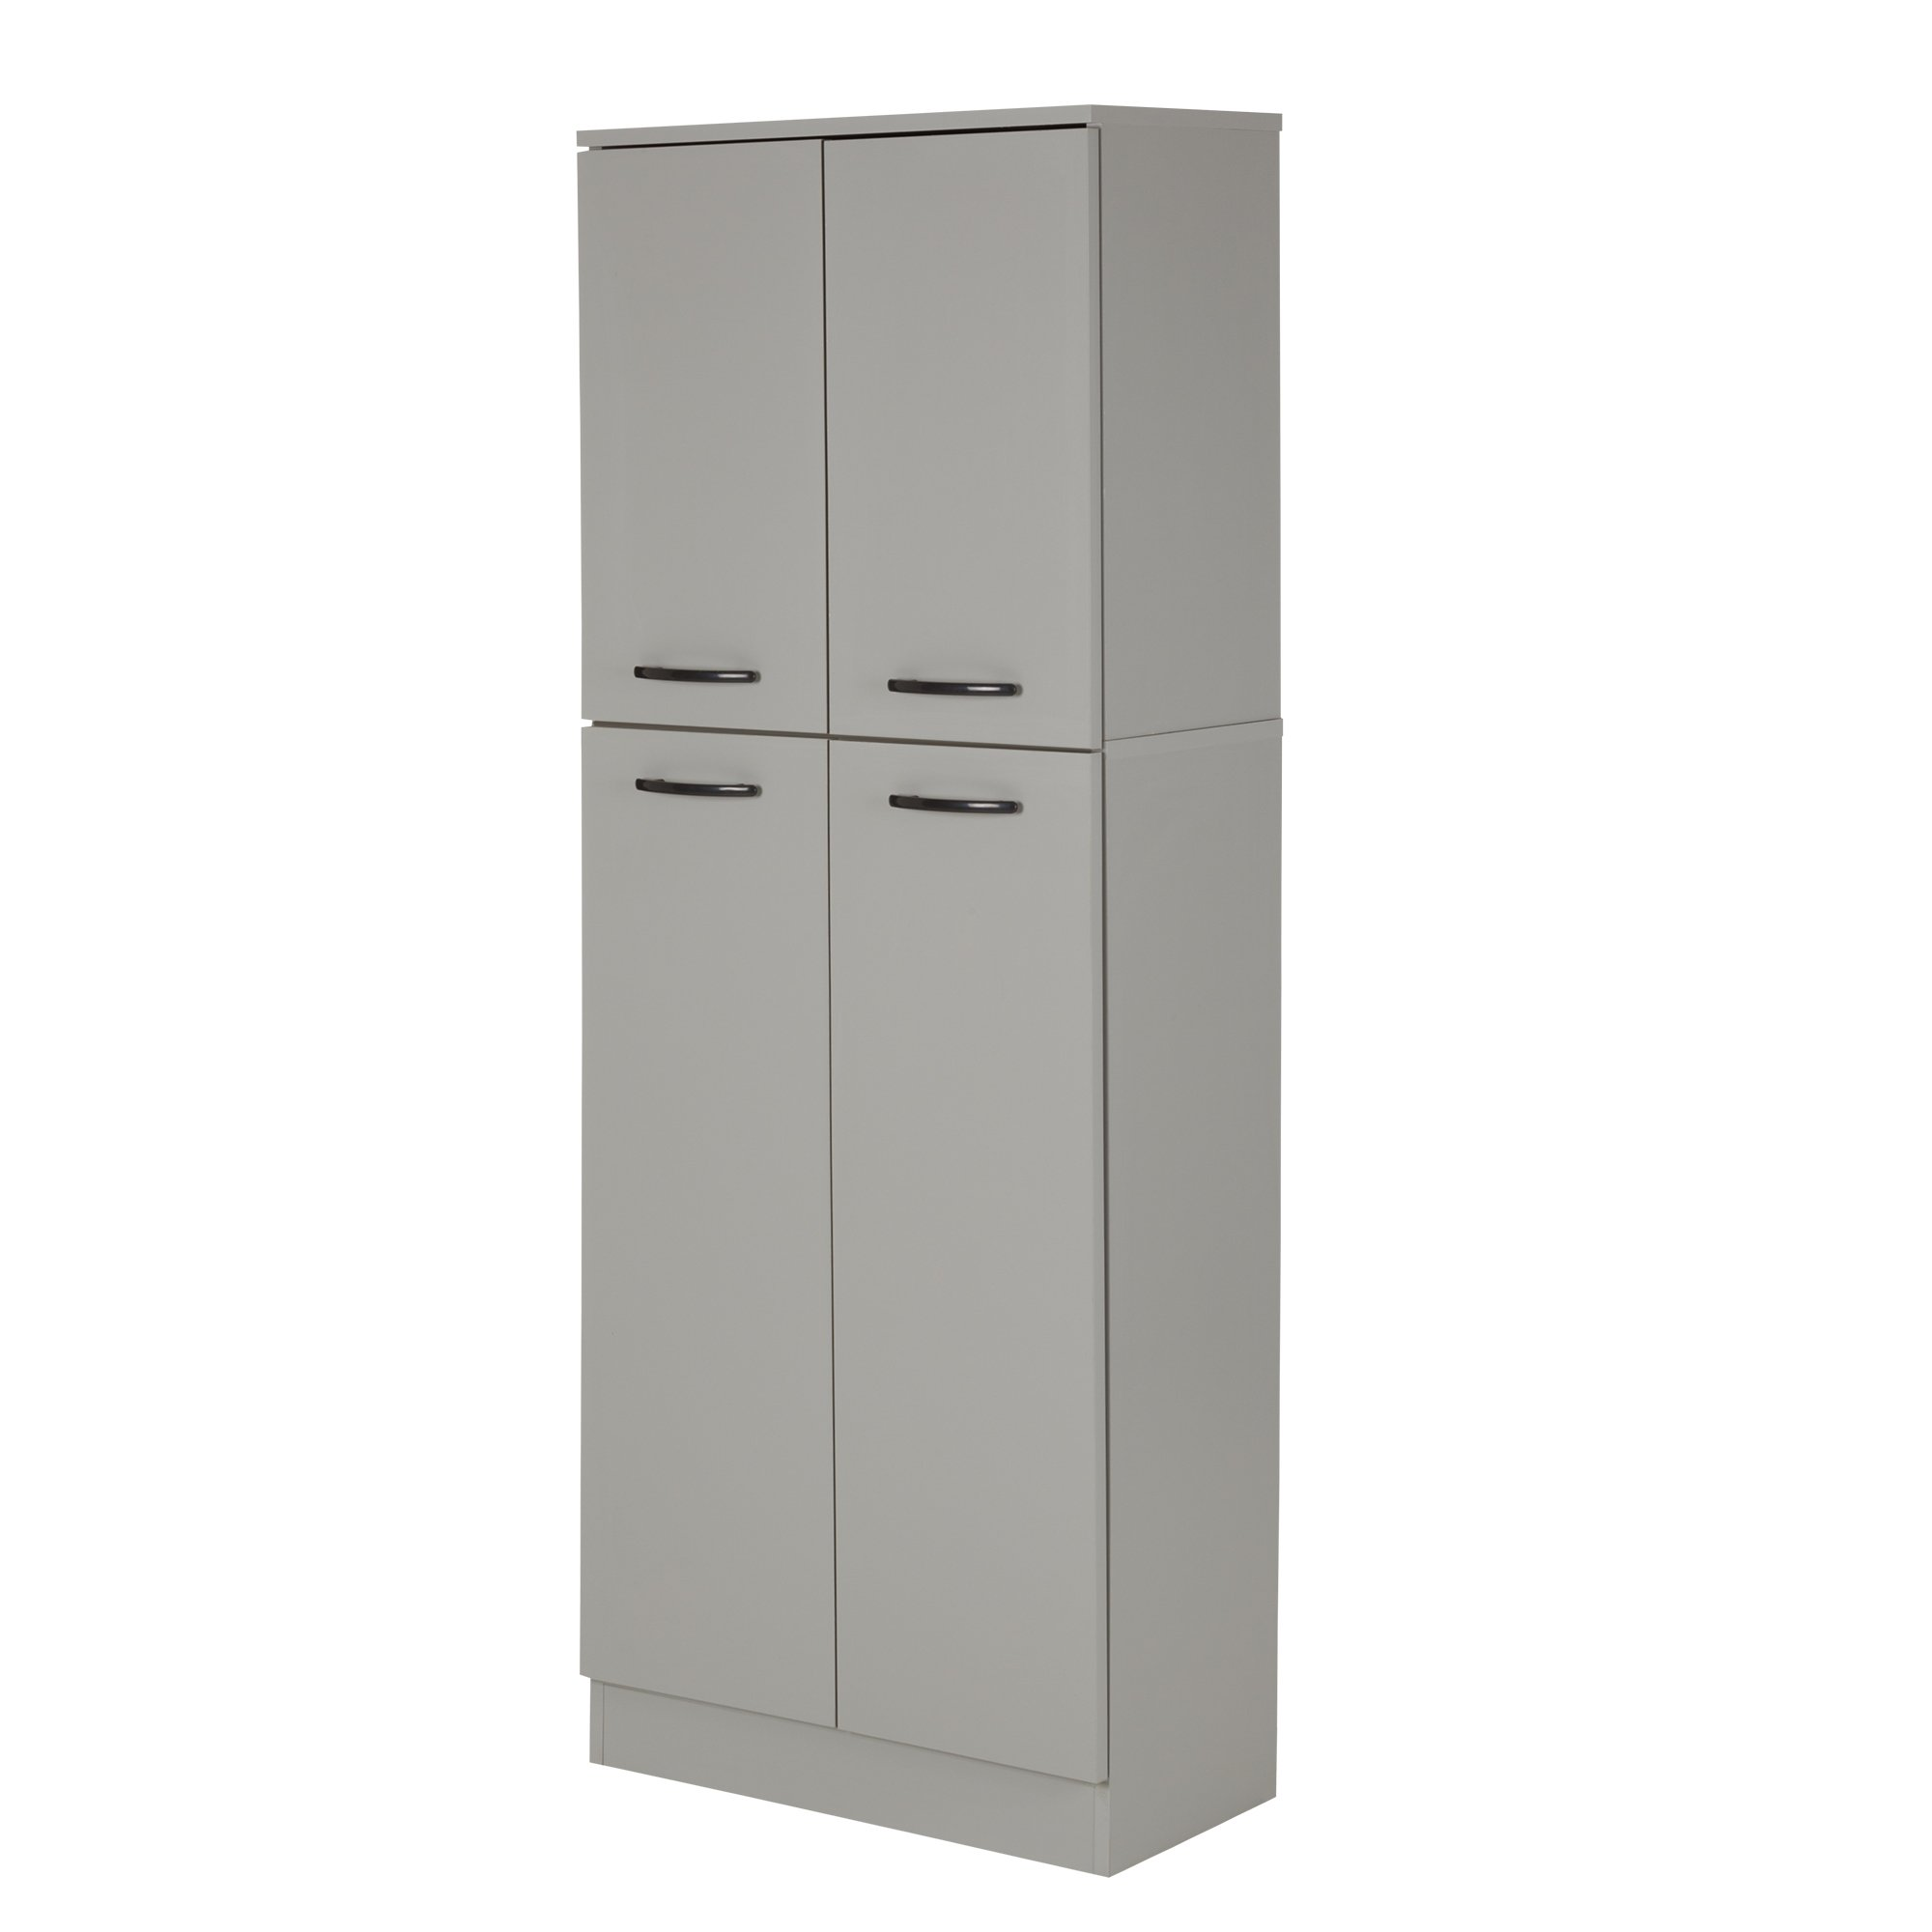 South Shore Axess 4-Shelf Pantry Storage, Soft Gray by South Shore (Image #2)